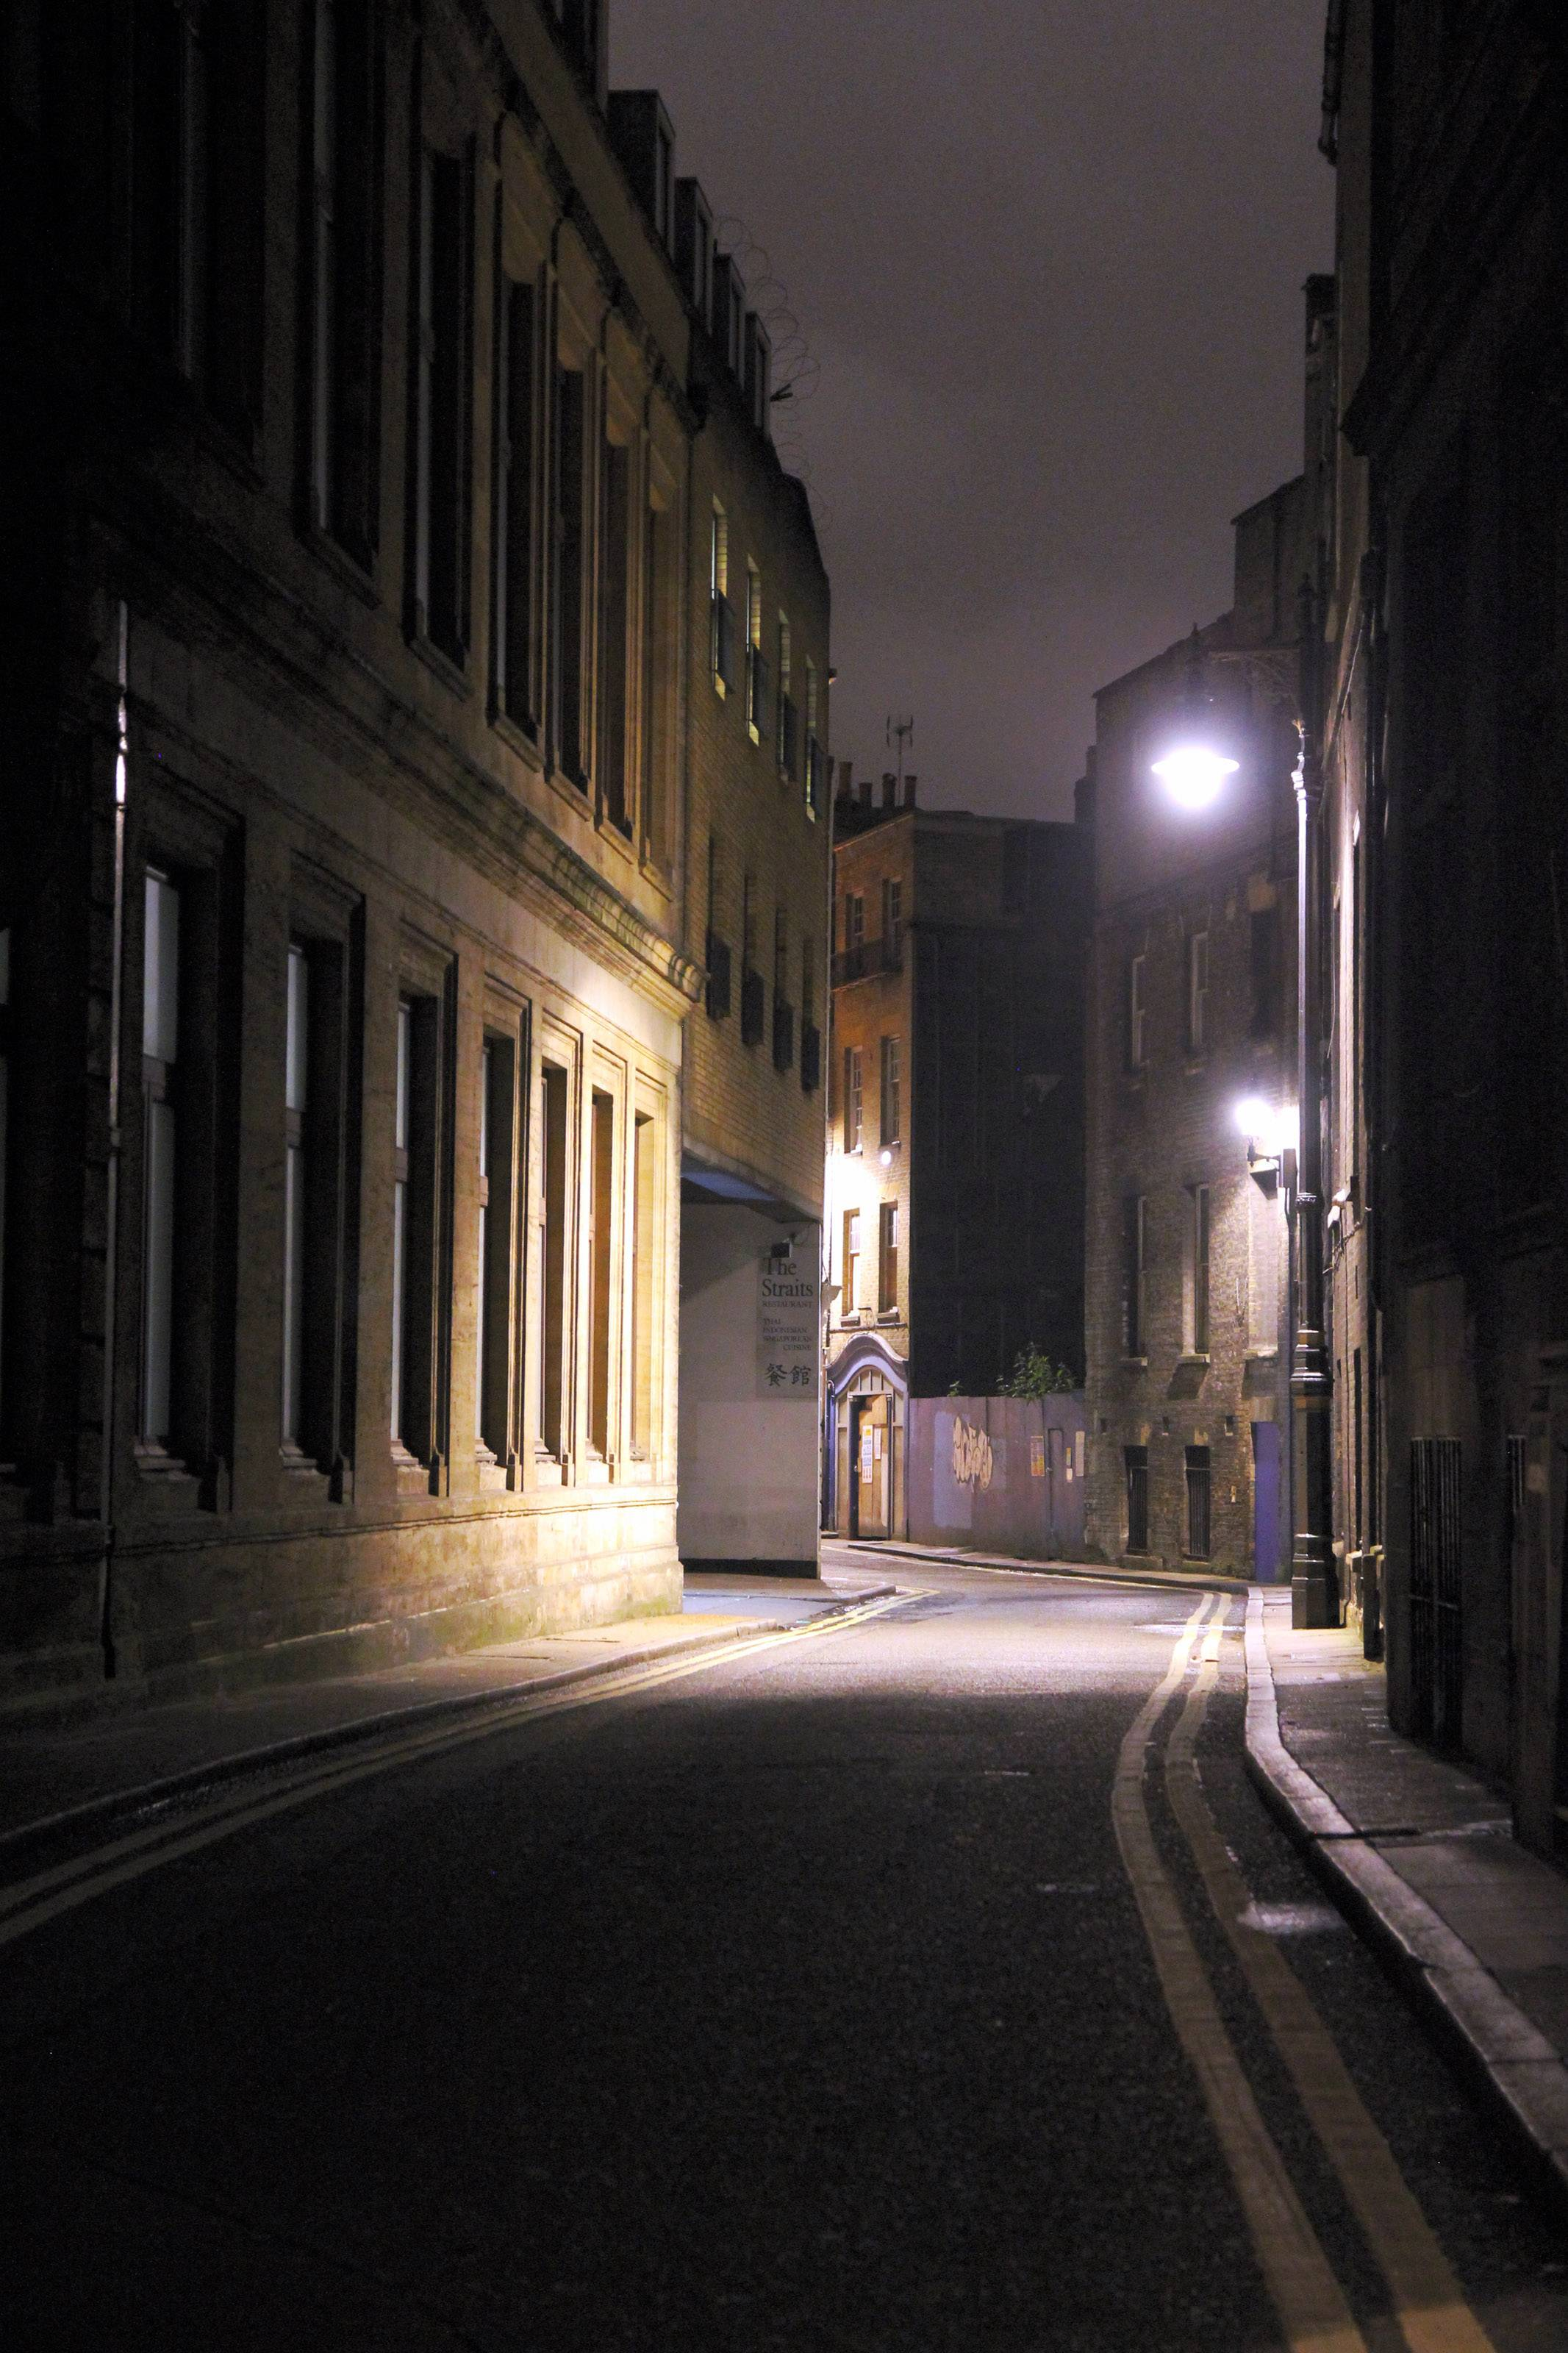 This shot was taken at 1:30 in the morning in London, as my daughter and I were walking back from Piccadilly Circus. The backlit alleyway and leading lines caught my attention. Without a tripod, I snapped this image. I really like how the eye is drawn into the alley with very moody light.